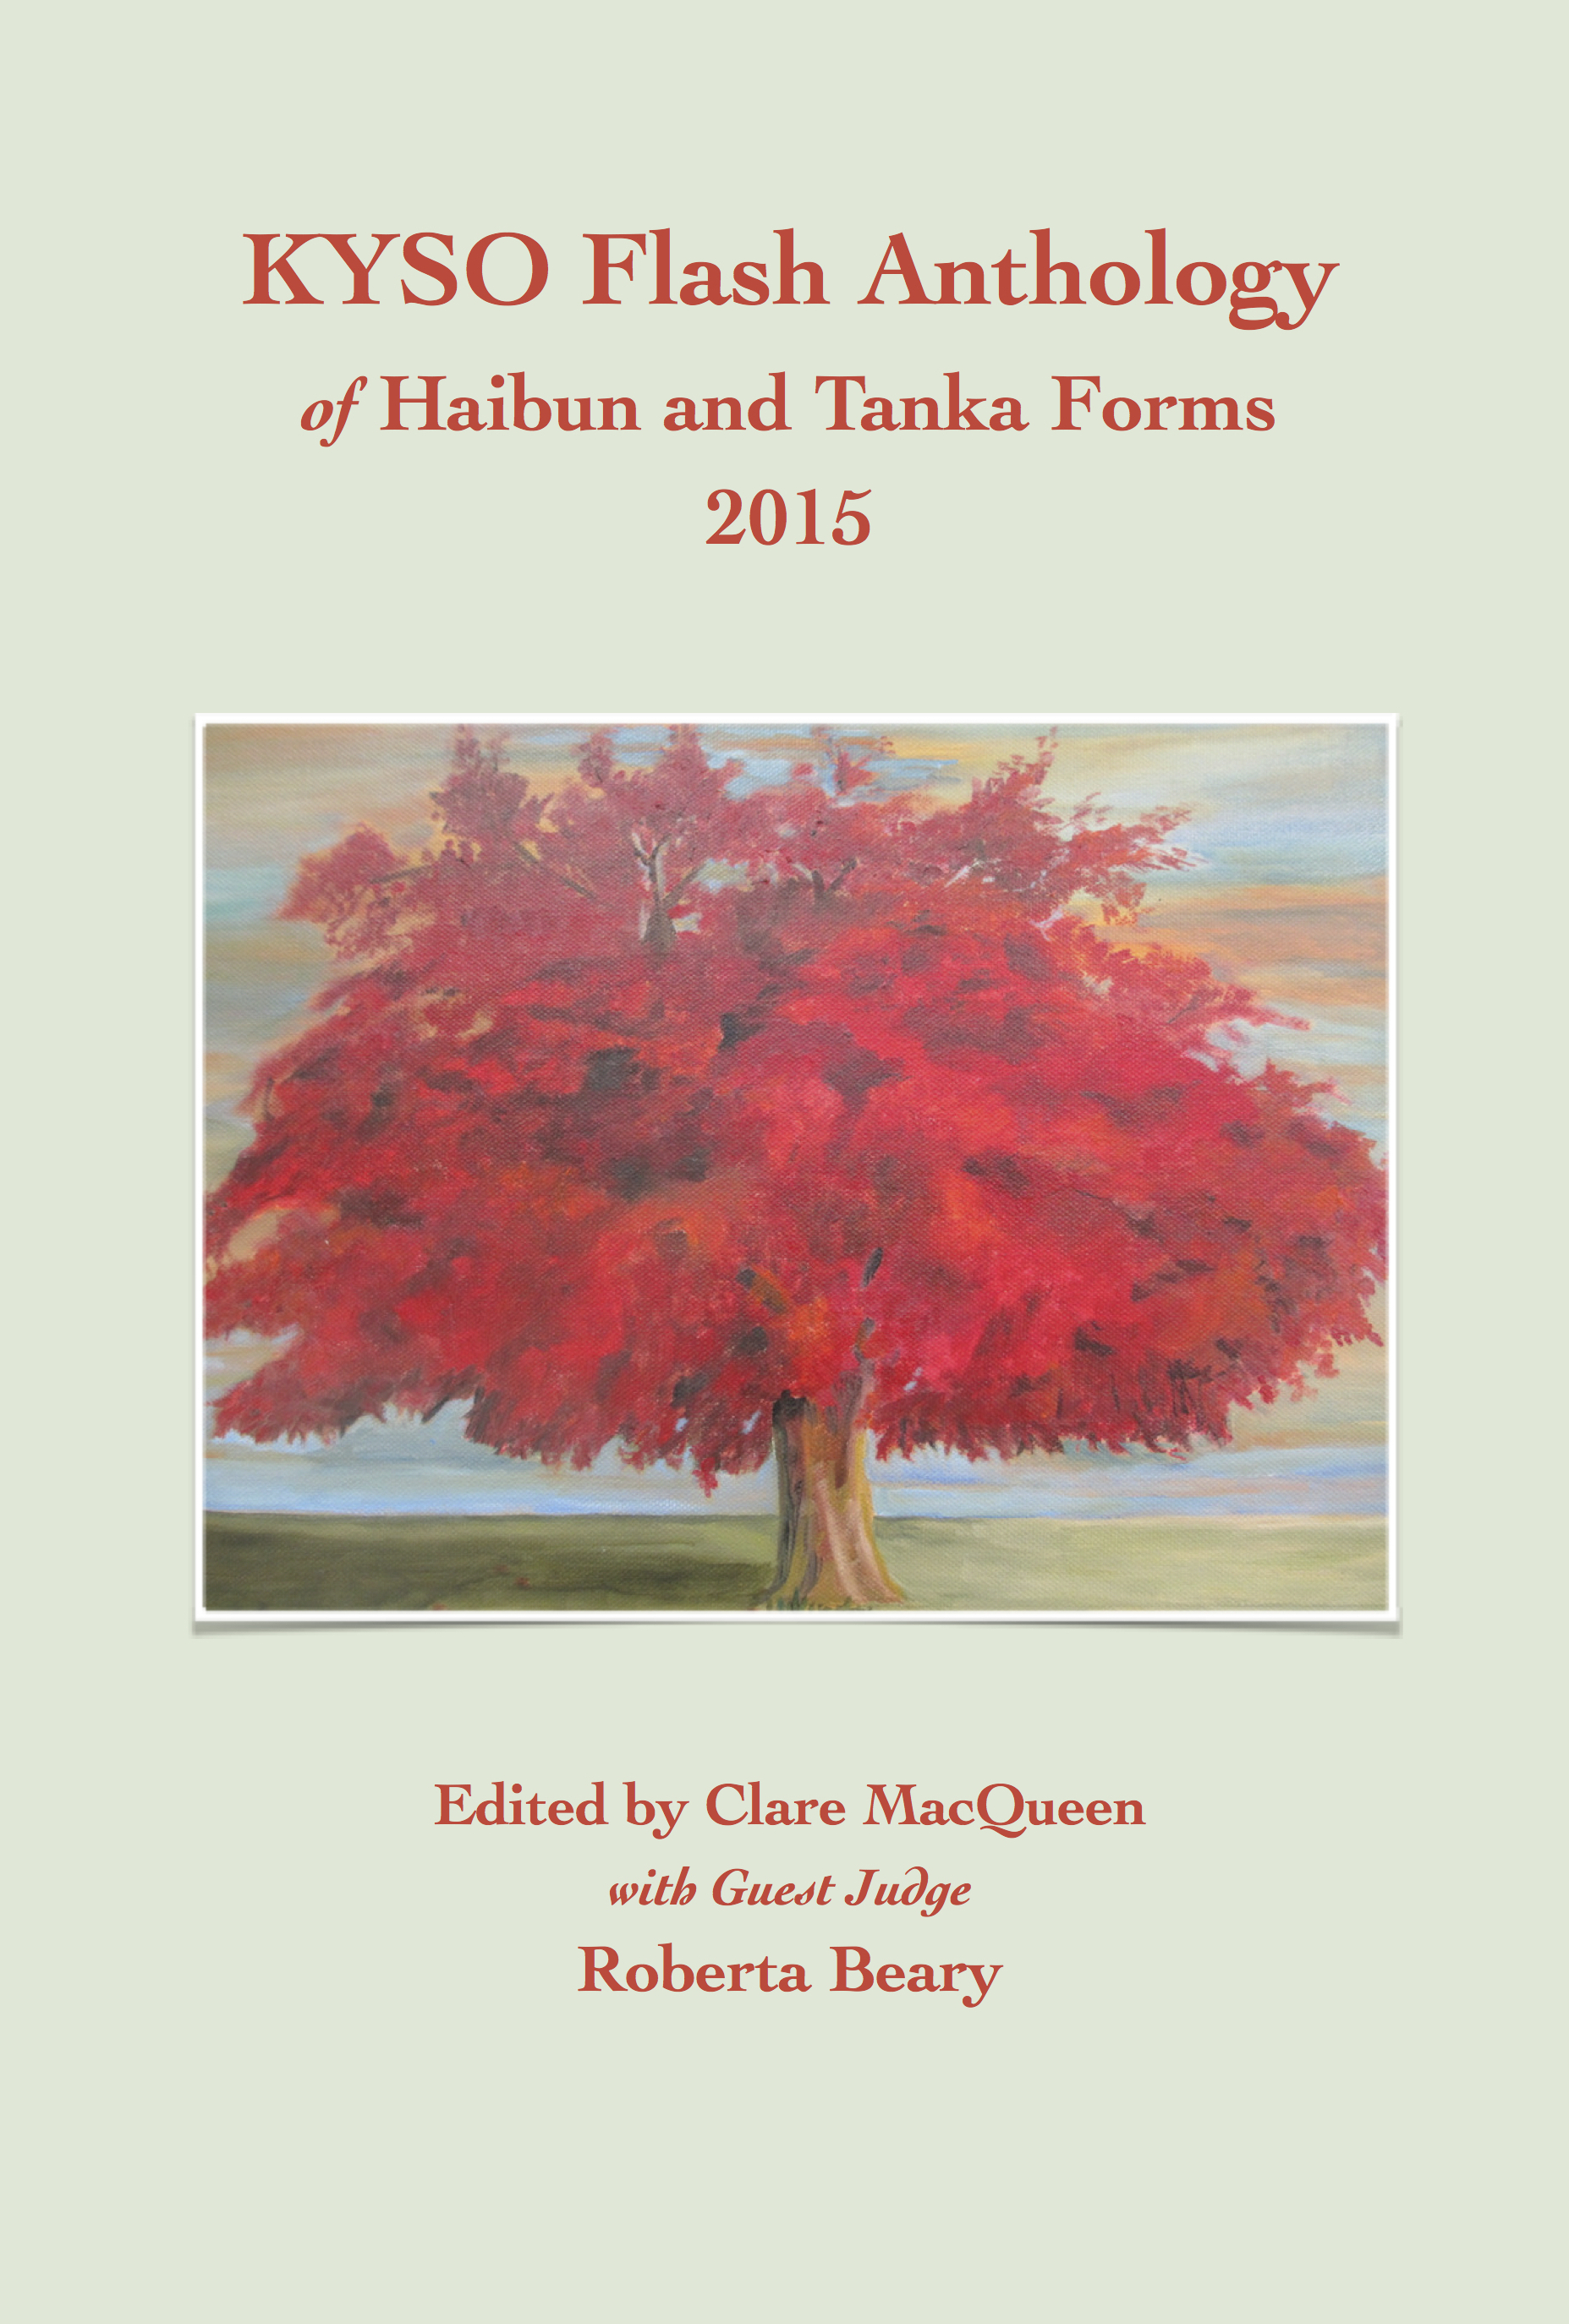 Cover of KYSO Flash Anthology of Haibun and Tanka Forms 2015